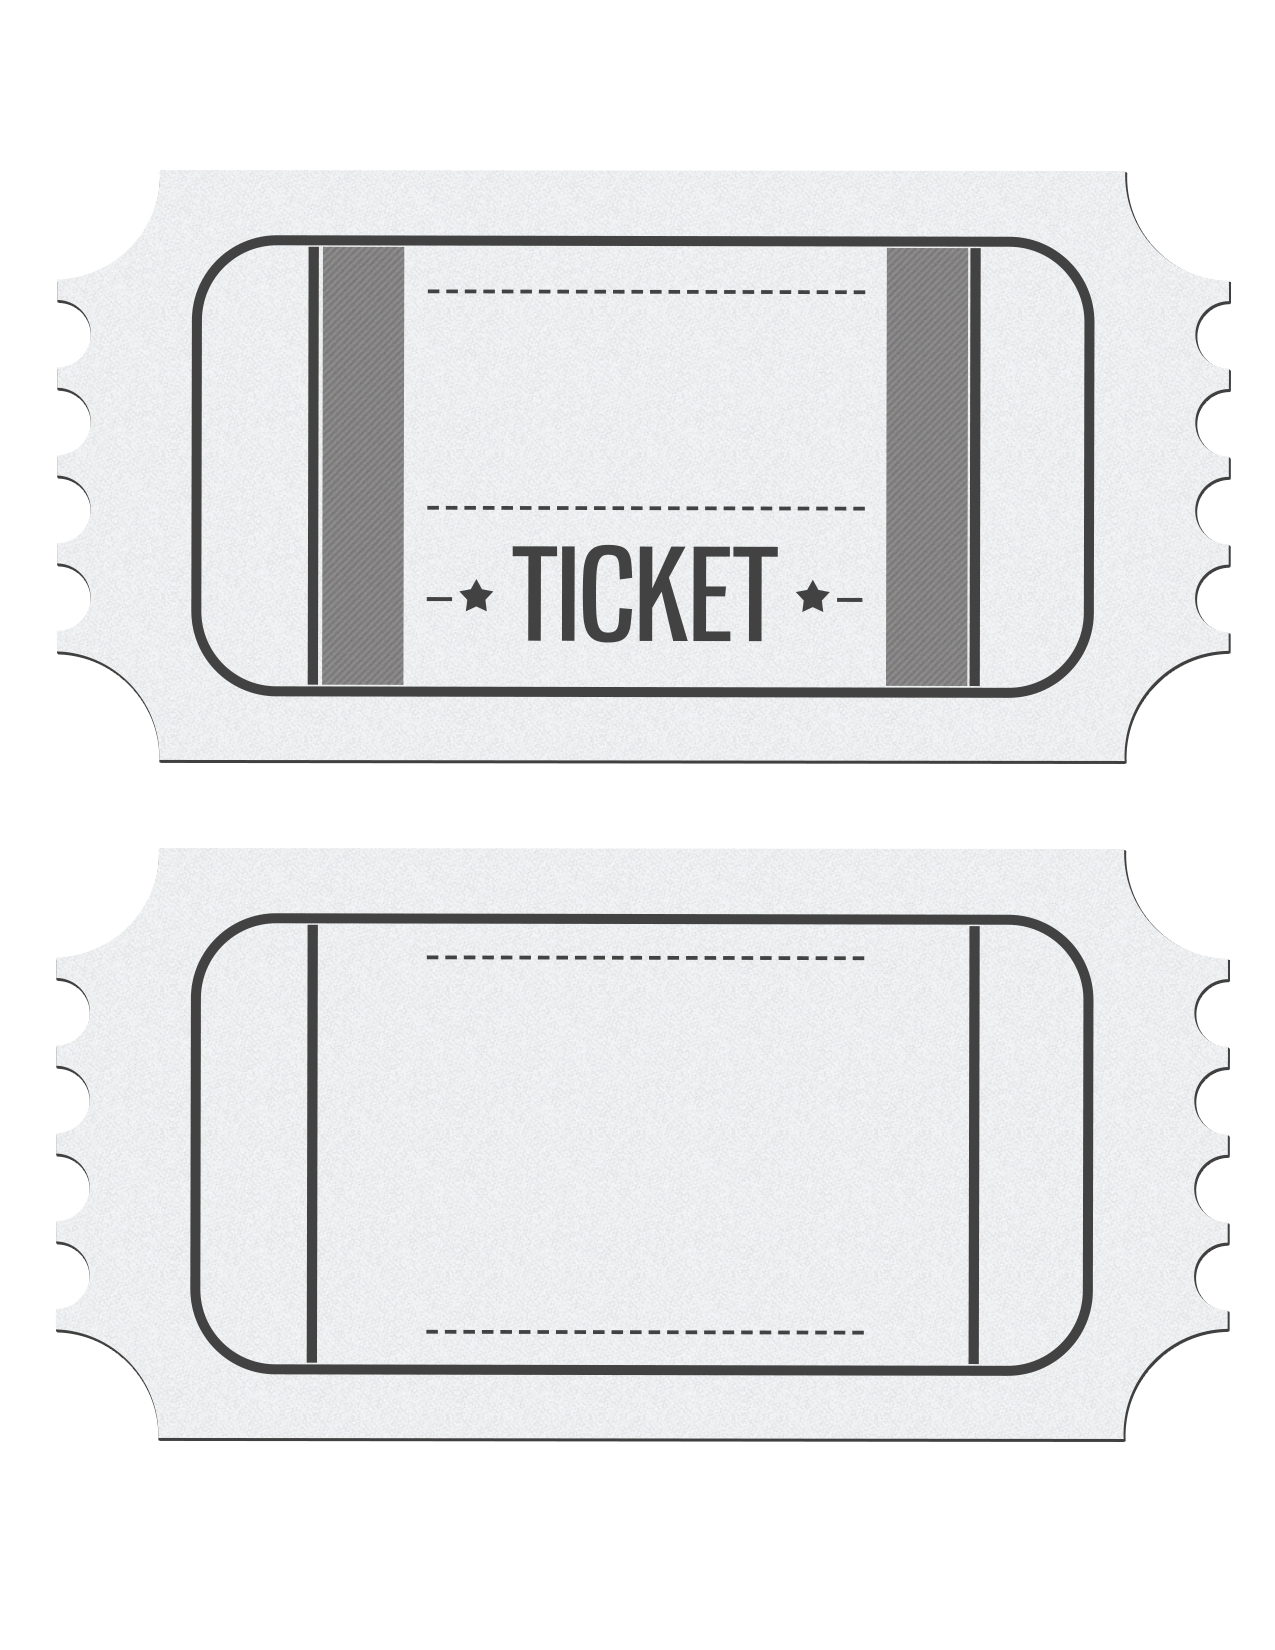 Pinlucy Escobedo On Cool | Ticket Invitation, Ticket Template - Free Printable Ticket Invitations